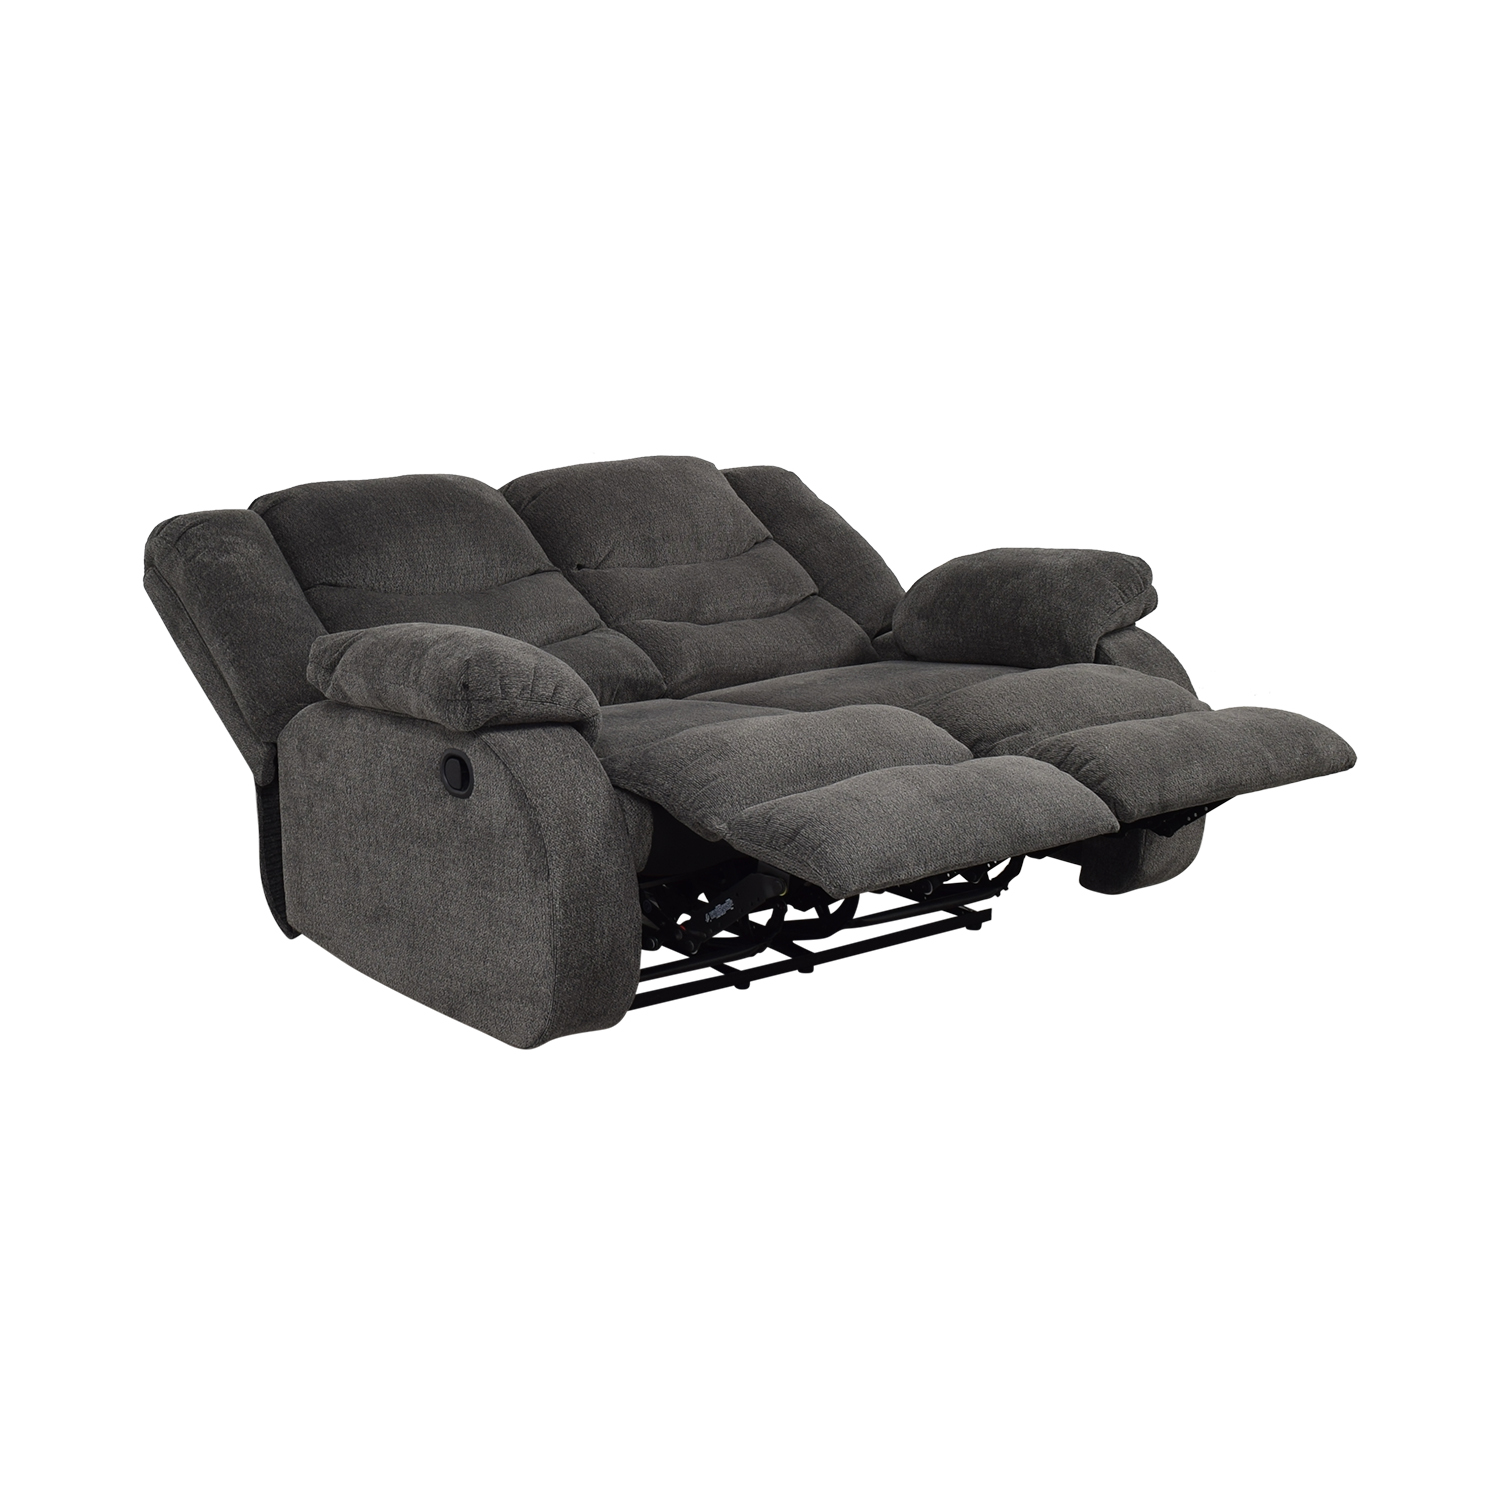 Ashley Furniture Gray Reclining Loveseat / Loveseats